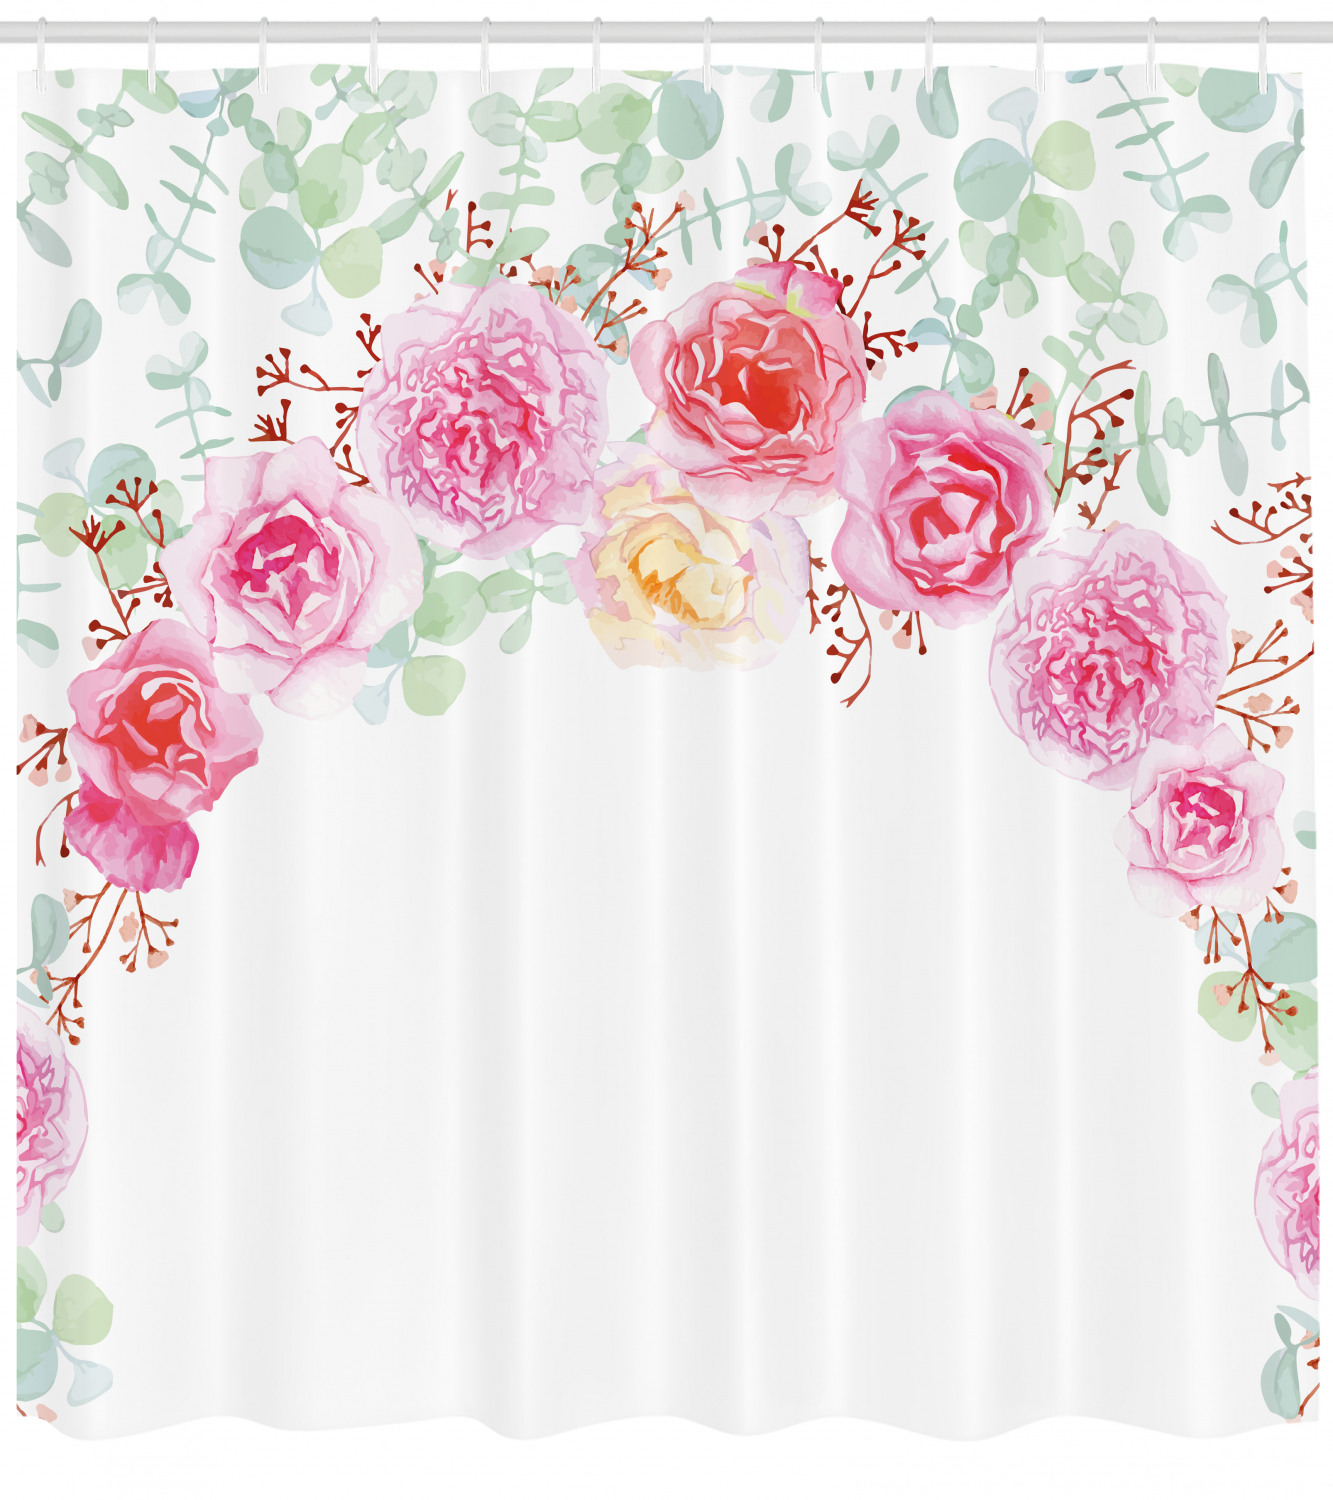 Shabby Chic Shower Curtain Floral Wreath In Half Blossoming Romantic Bridal Roses Peonies Feminine Design Fabric Bathroom Set With Hooks 69w X 75l